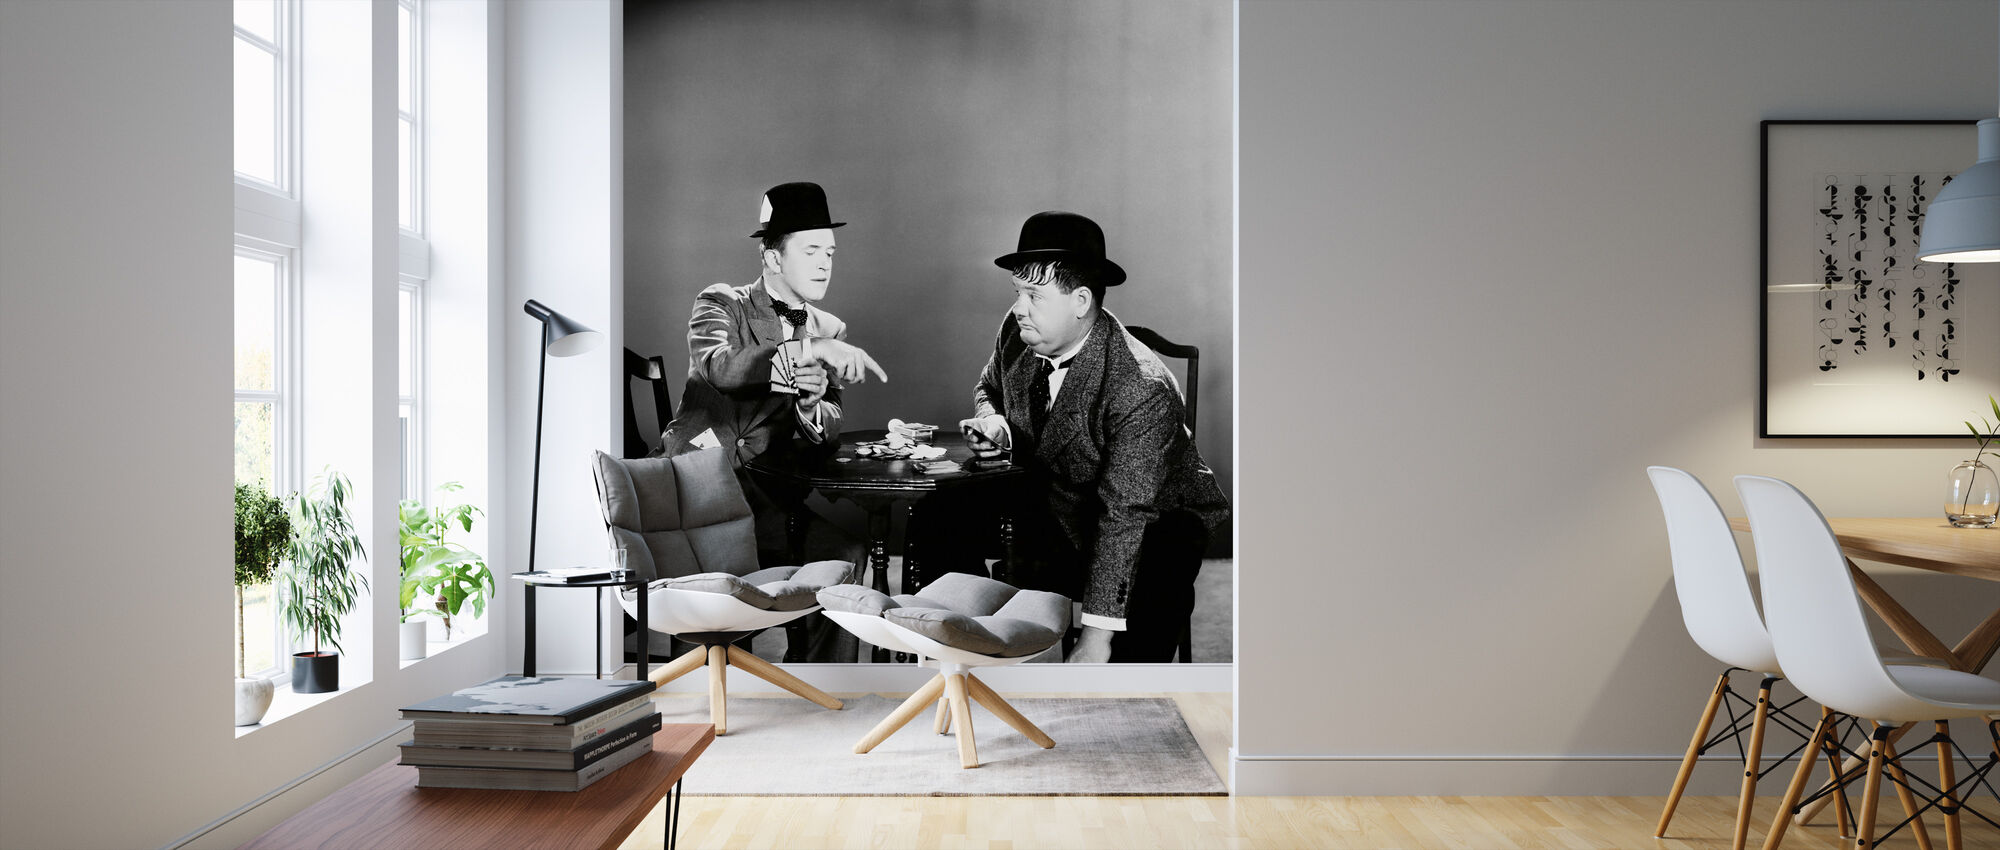 Oliver Hardy and Stan Laurel - Wallpaper - Living Room